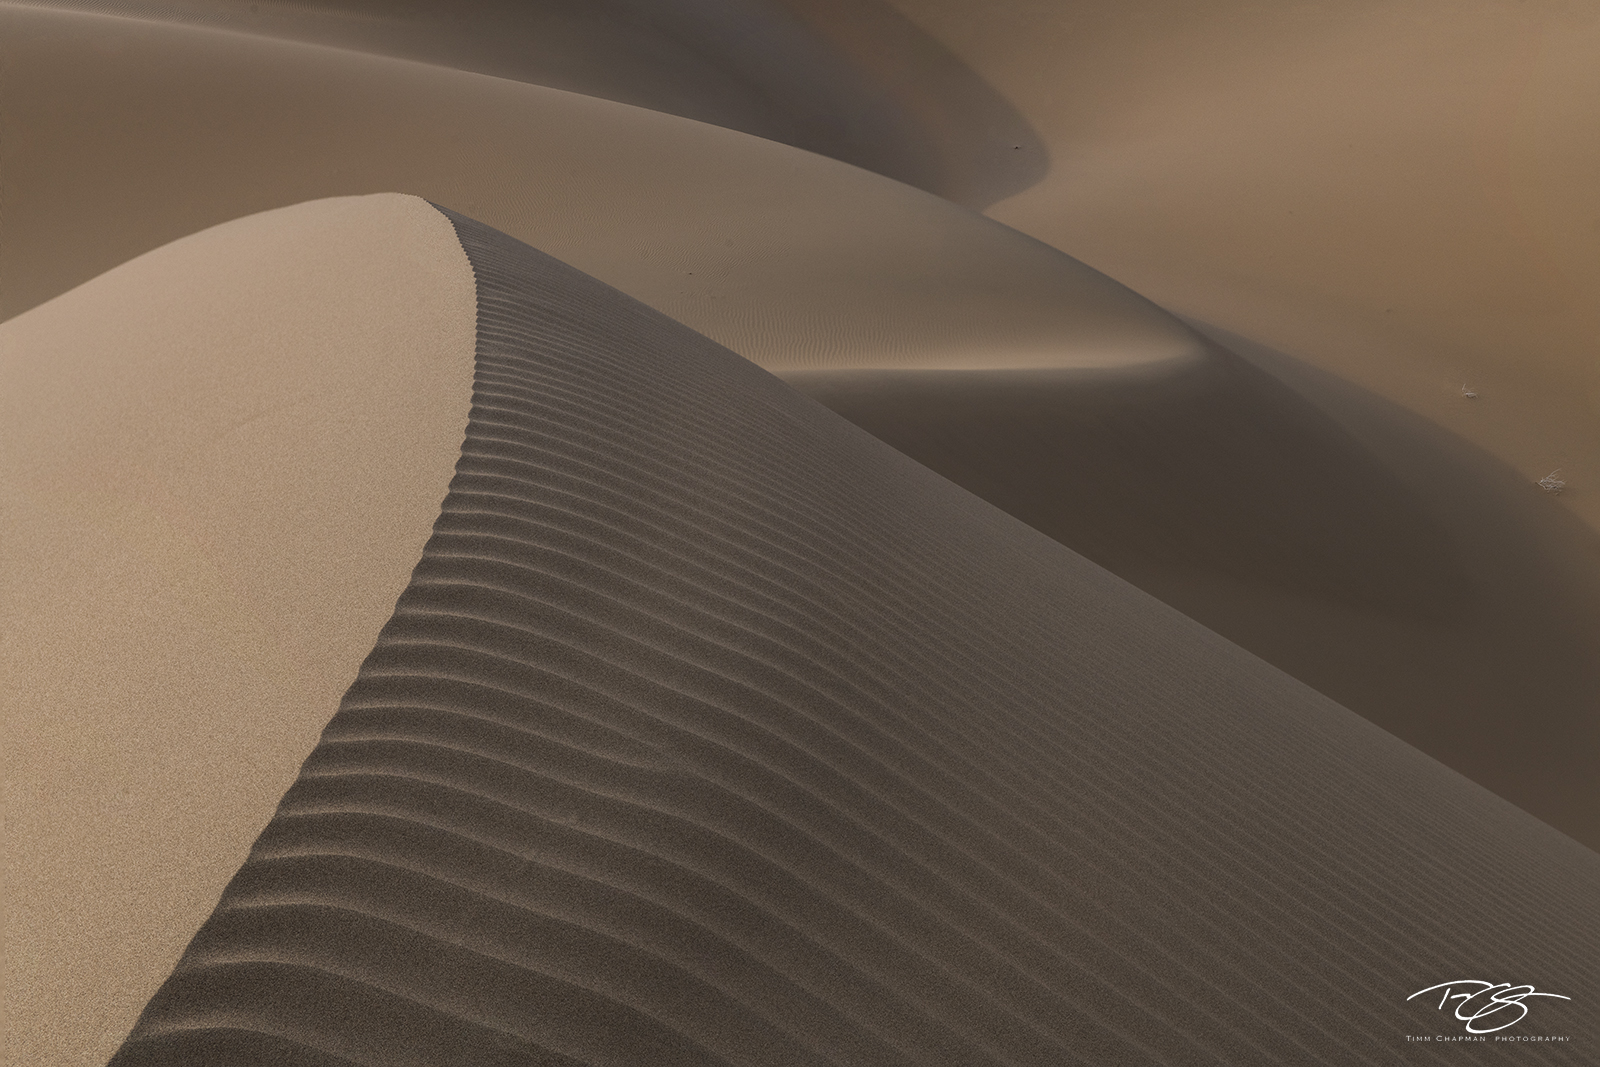 gobi desert, china, abstract, patterns, sand dune, sand, dune, desert, dynamic, sculpture, gobi